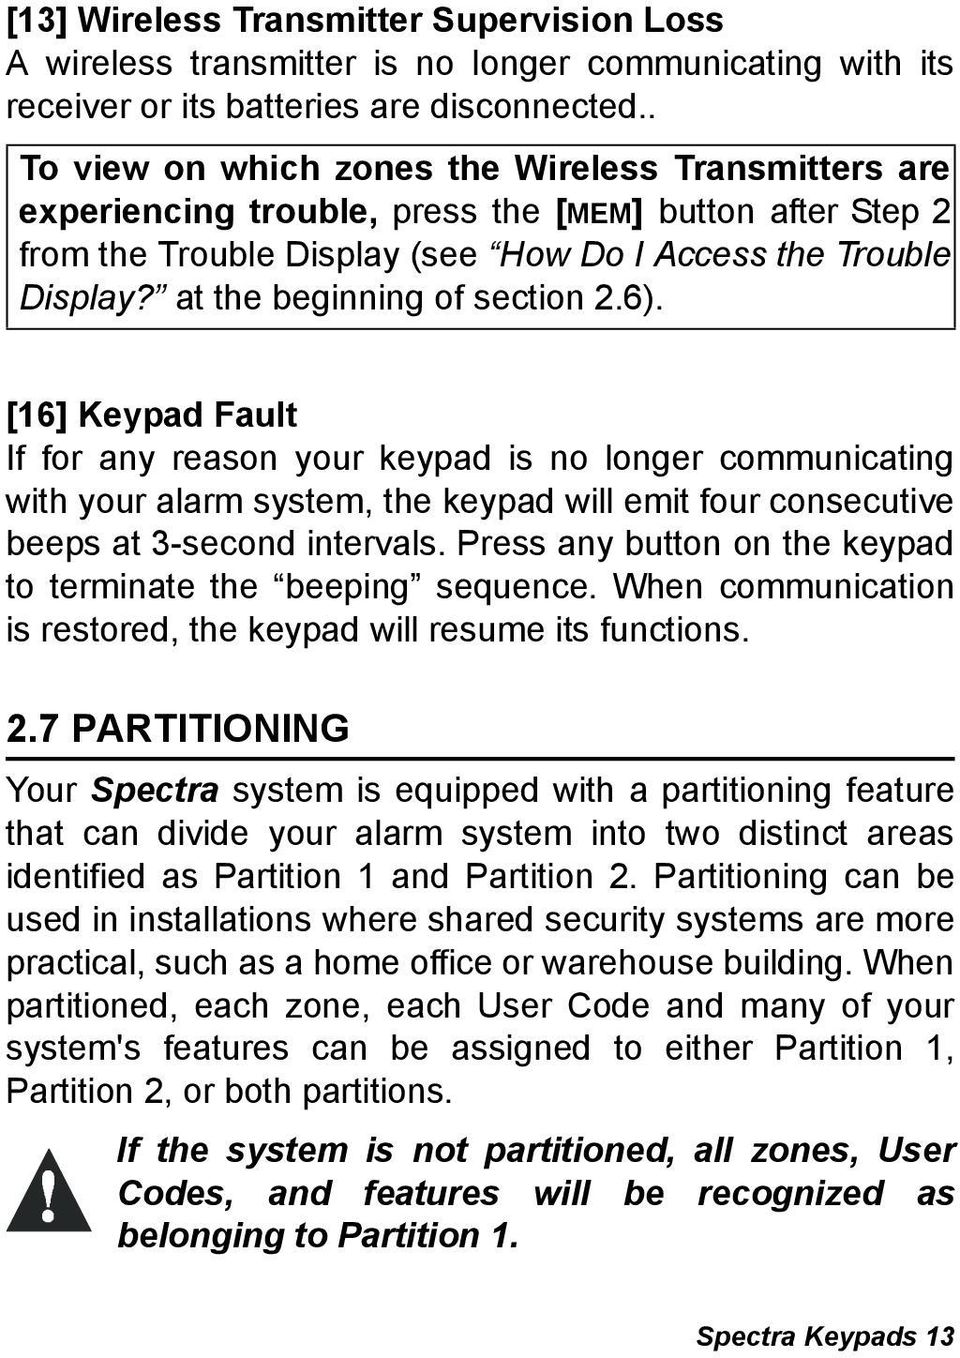 at the beginning of section 2.6). [16] Keypad Fault If for any reason your keypad is no longer communicating with your alarm system, the keypad will emit four consecutive beeps at 3-second intervals.